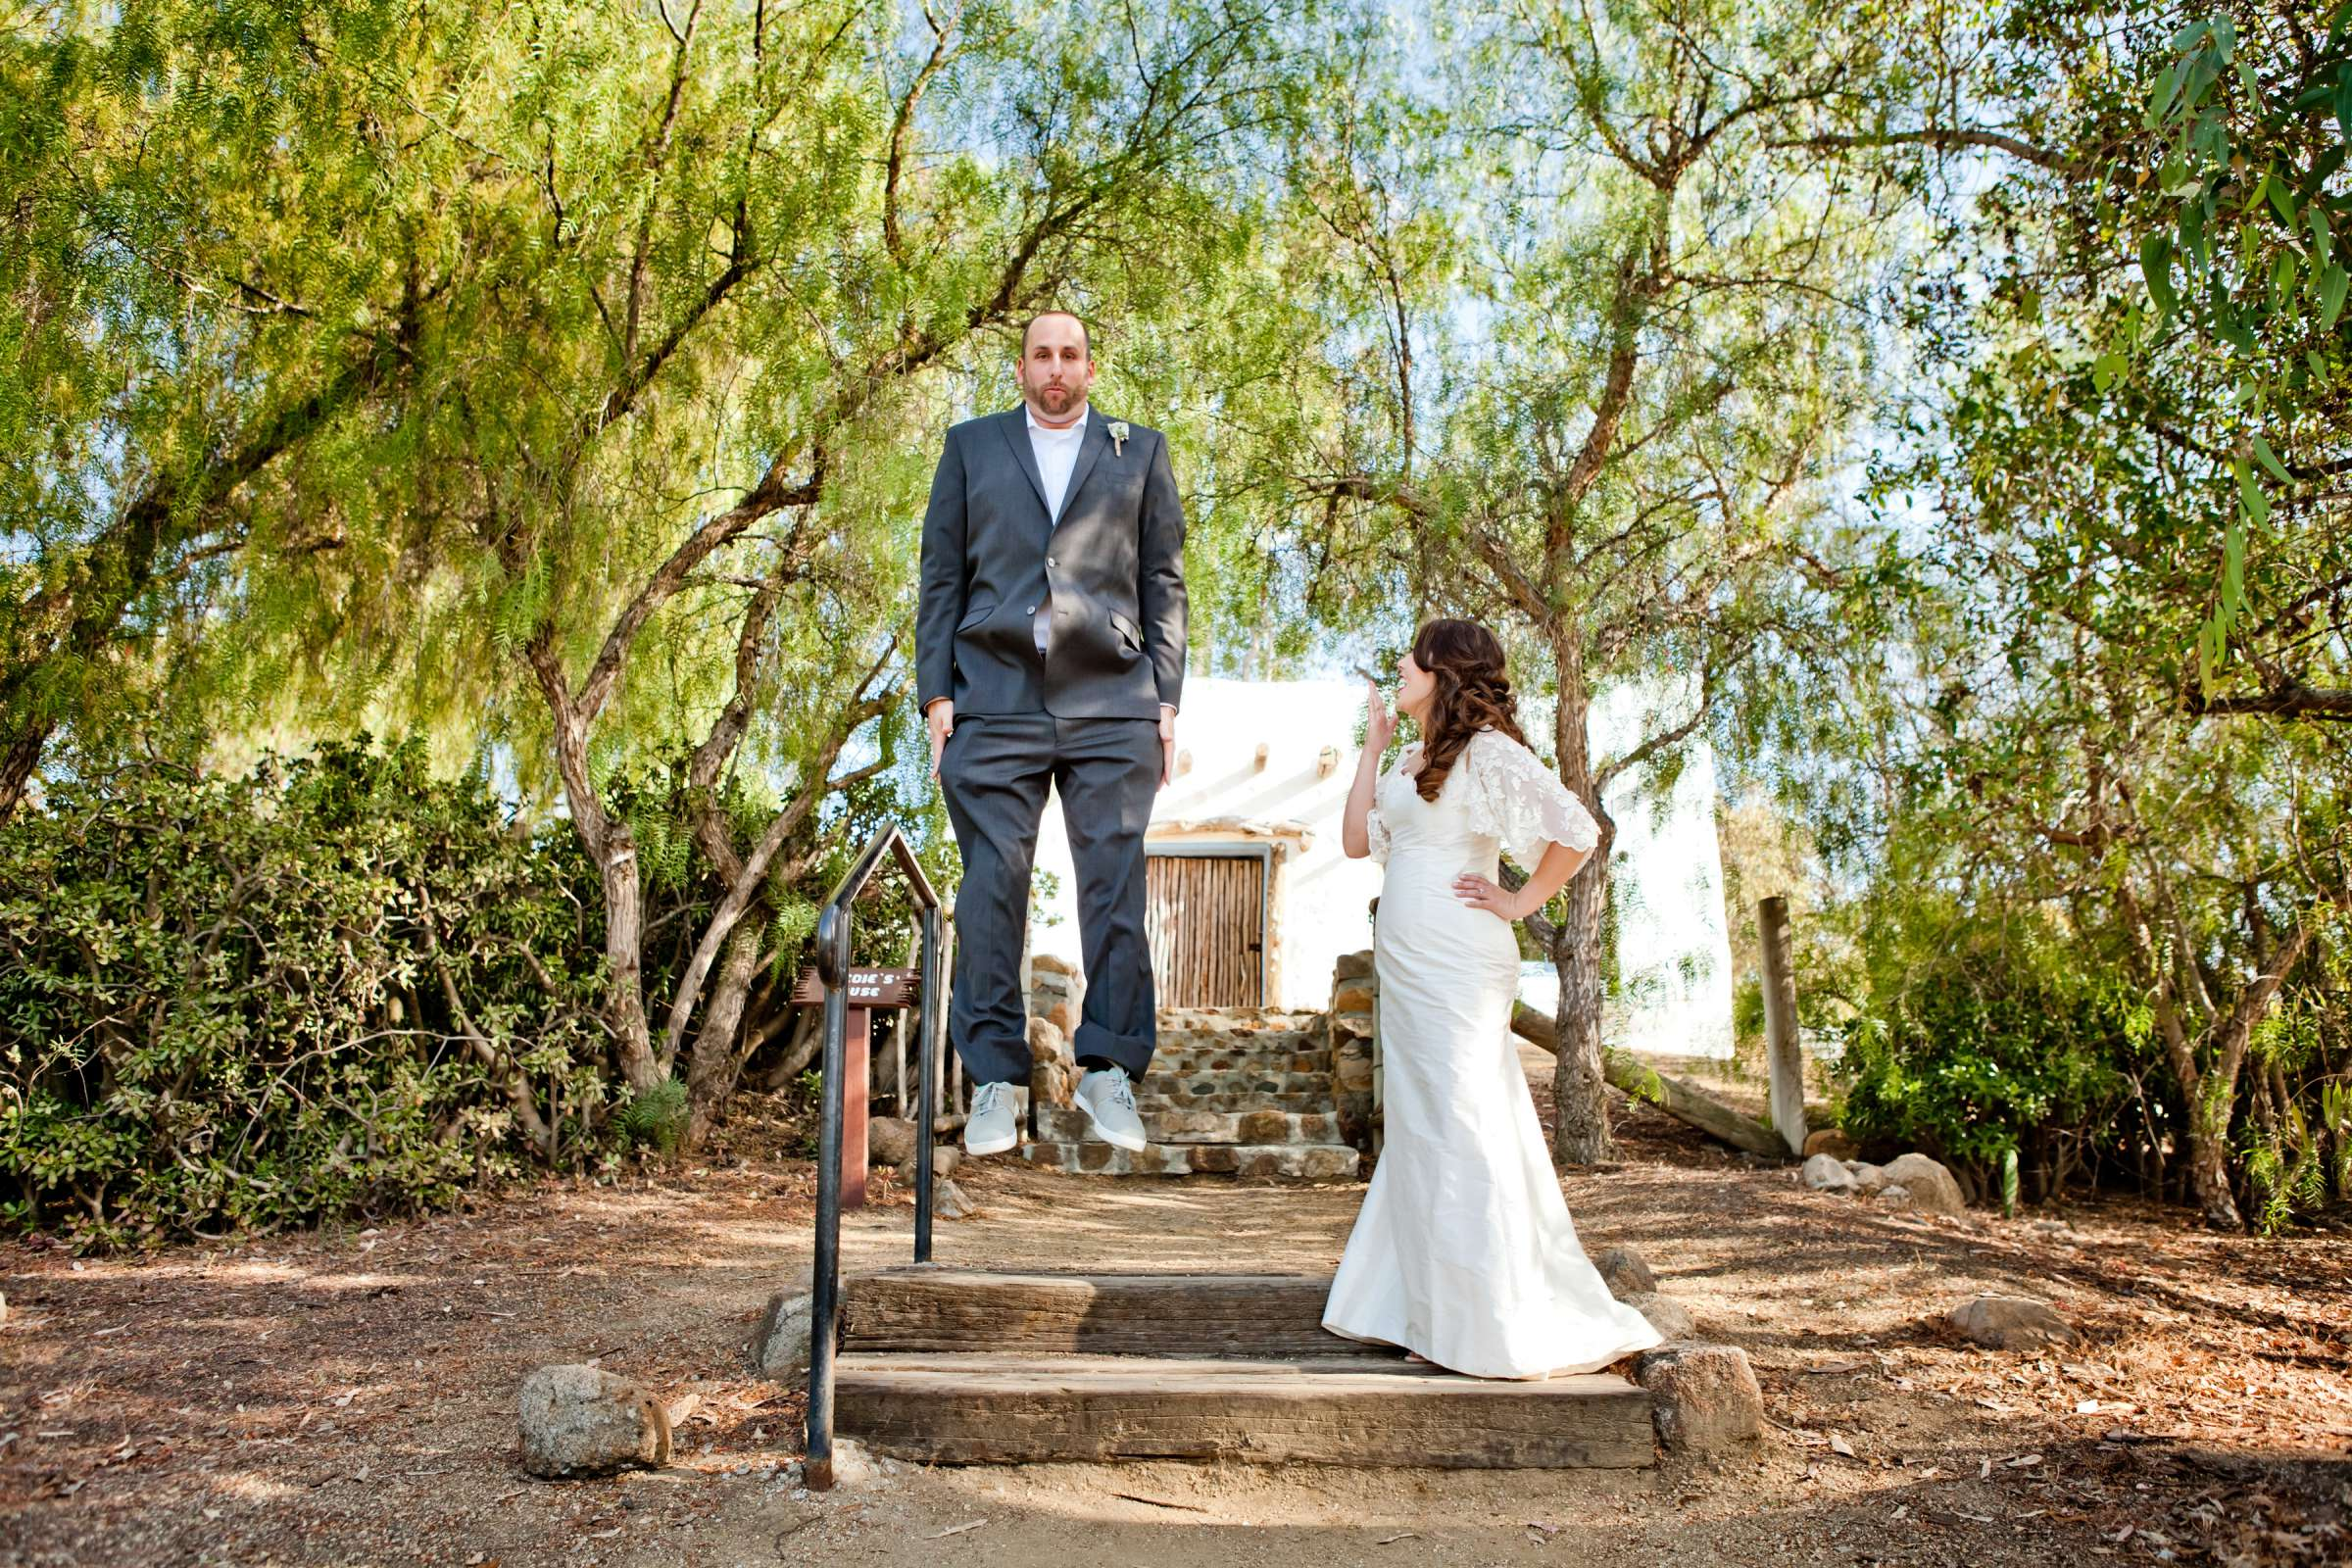 Leo Carrillo Ranch Wedding coordinated by Weddings by Lisa Nicole, Bethany and Aaron Wedding Photo #12 by True Photography